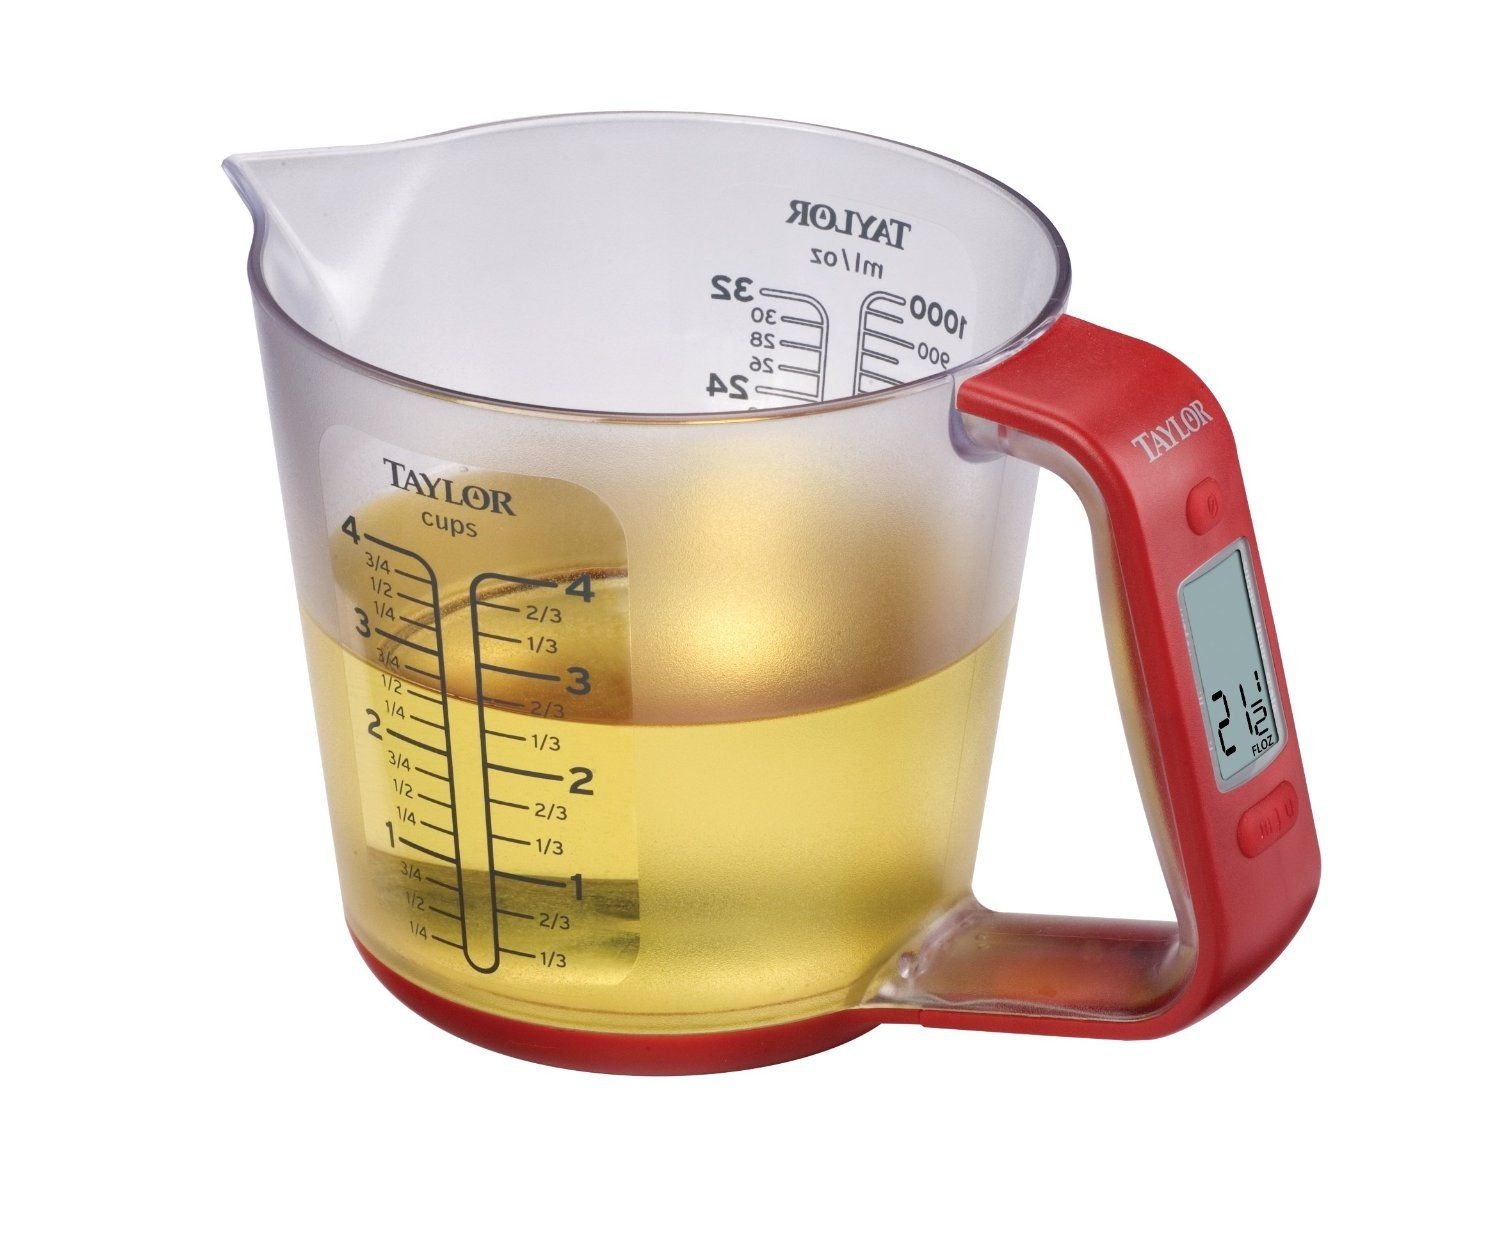 $20.64 Digital Measuring Cup Scale | Cool kitchen gadgets